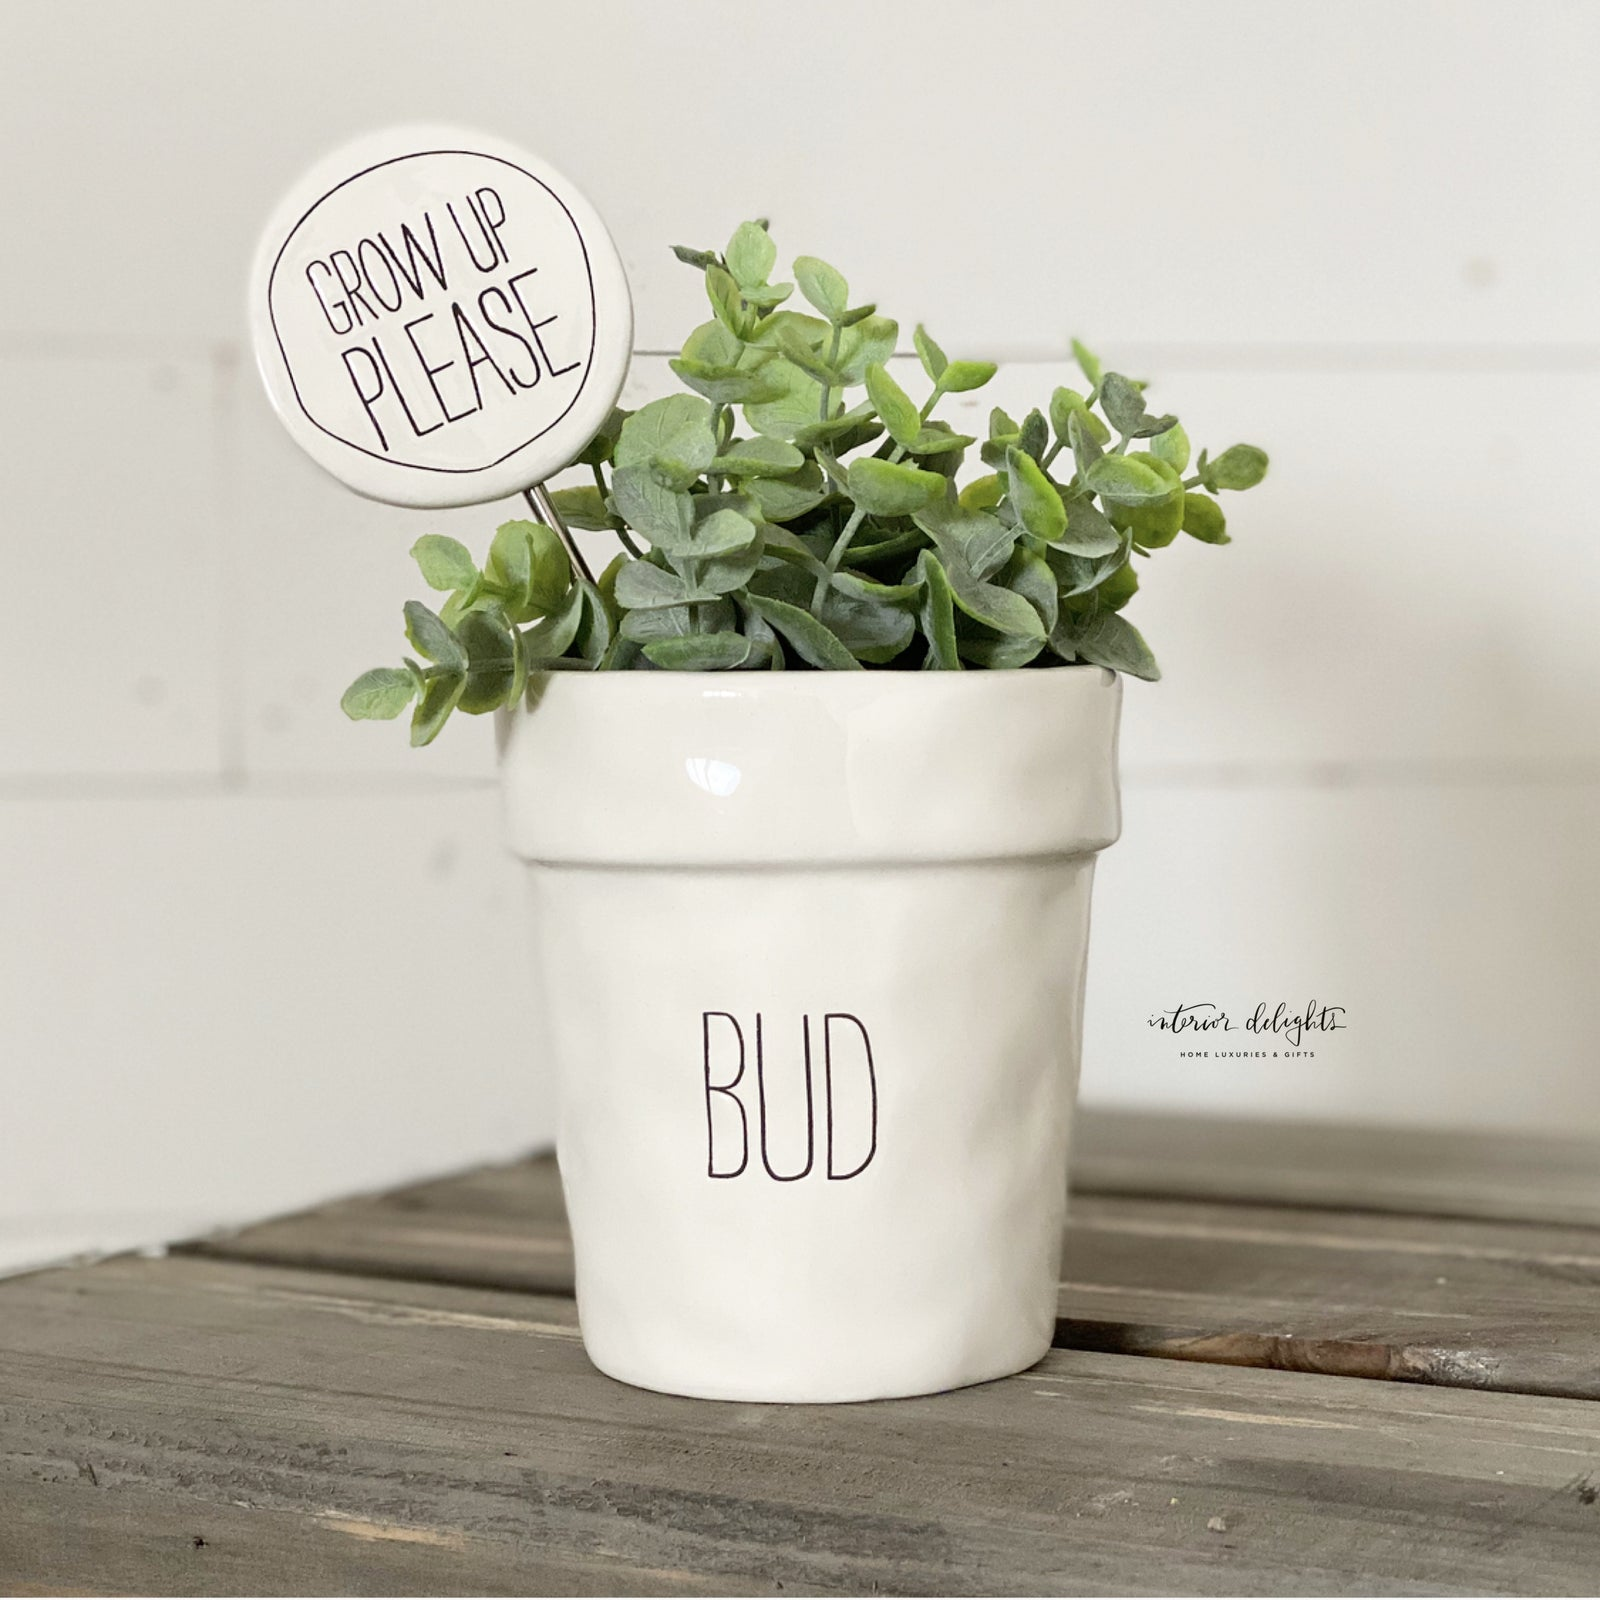 Bud Planter with Grow Up Please Marker